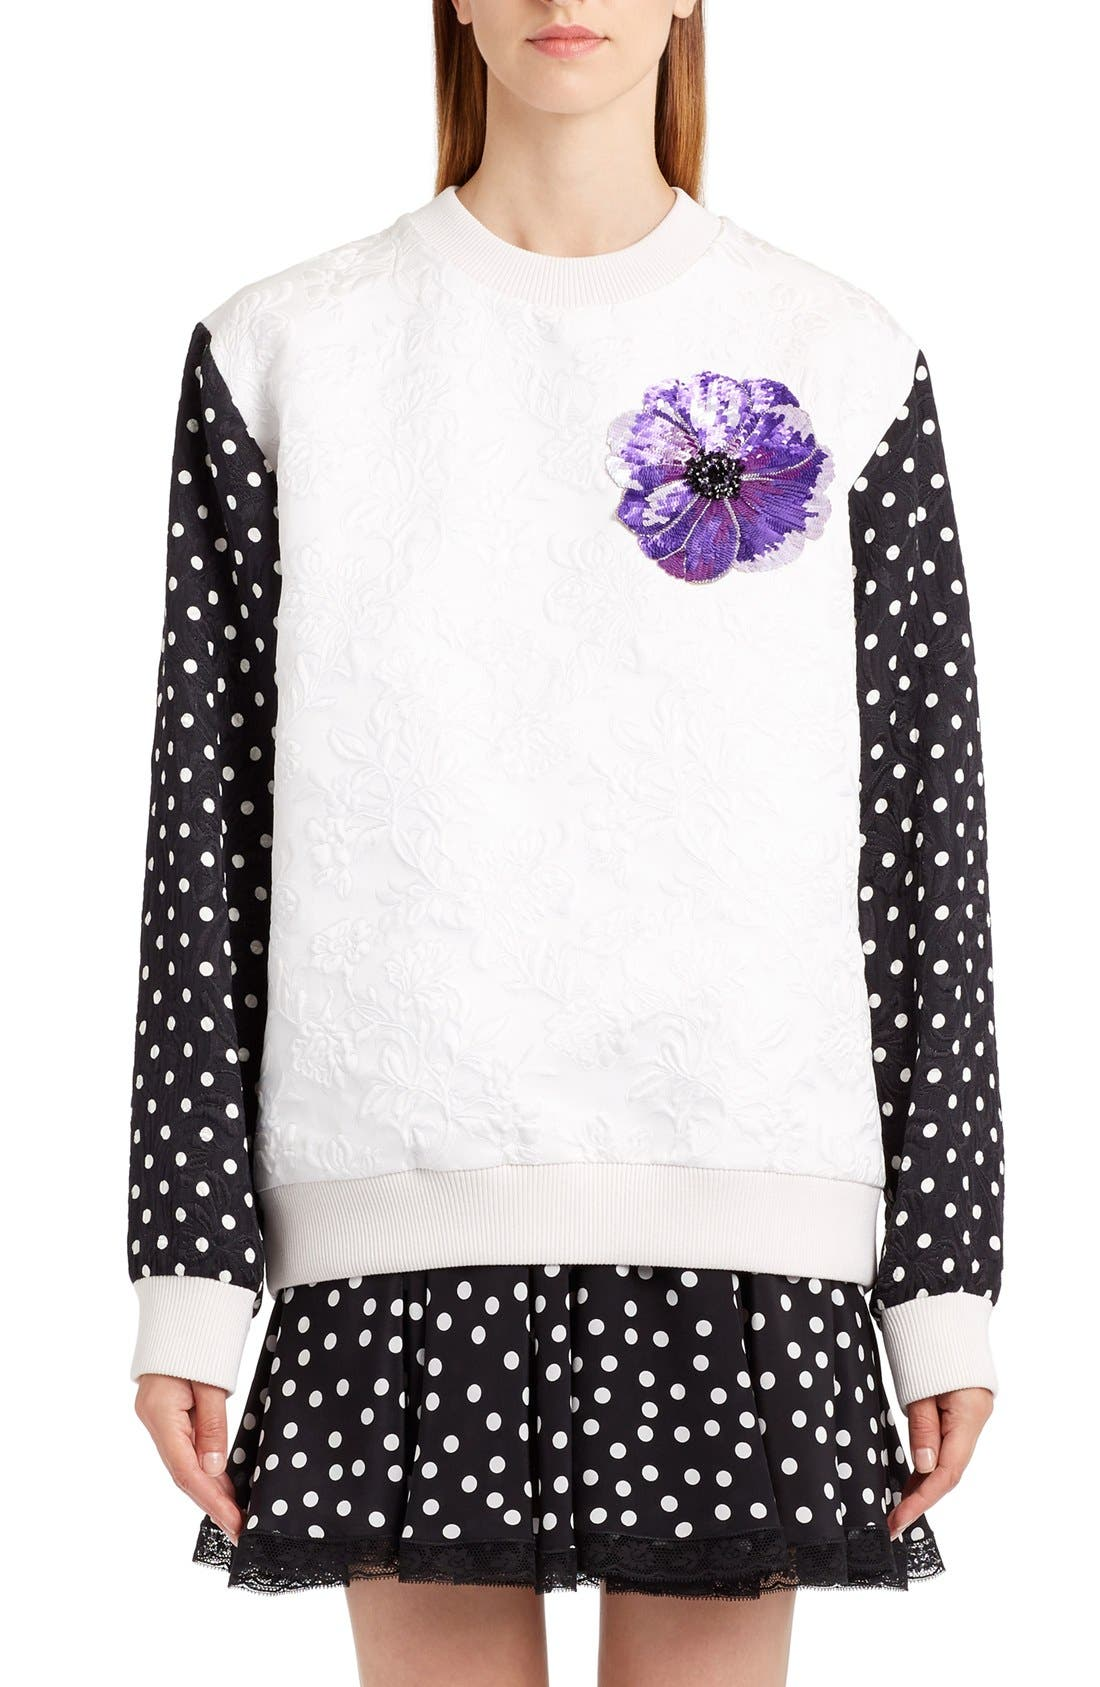 DOLCE&GABBANA Dot Sleeve Embellished Sweatshirt